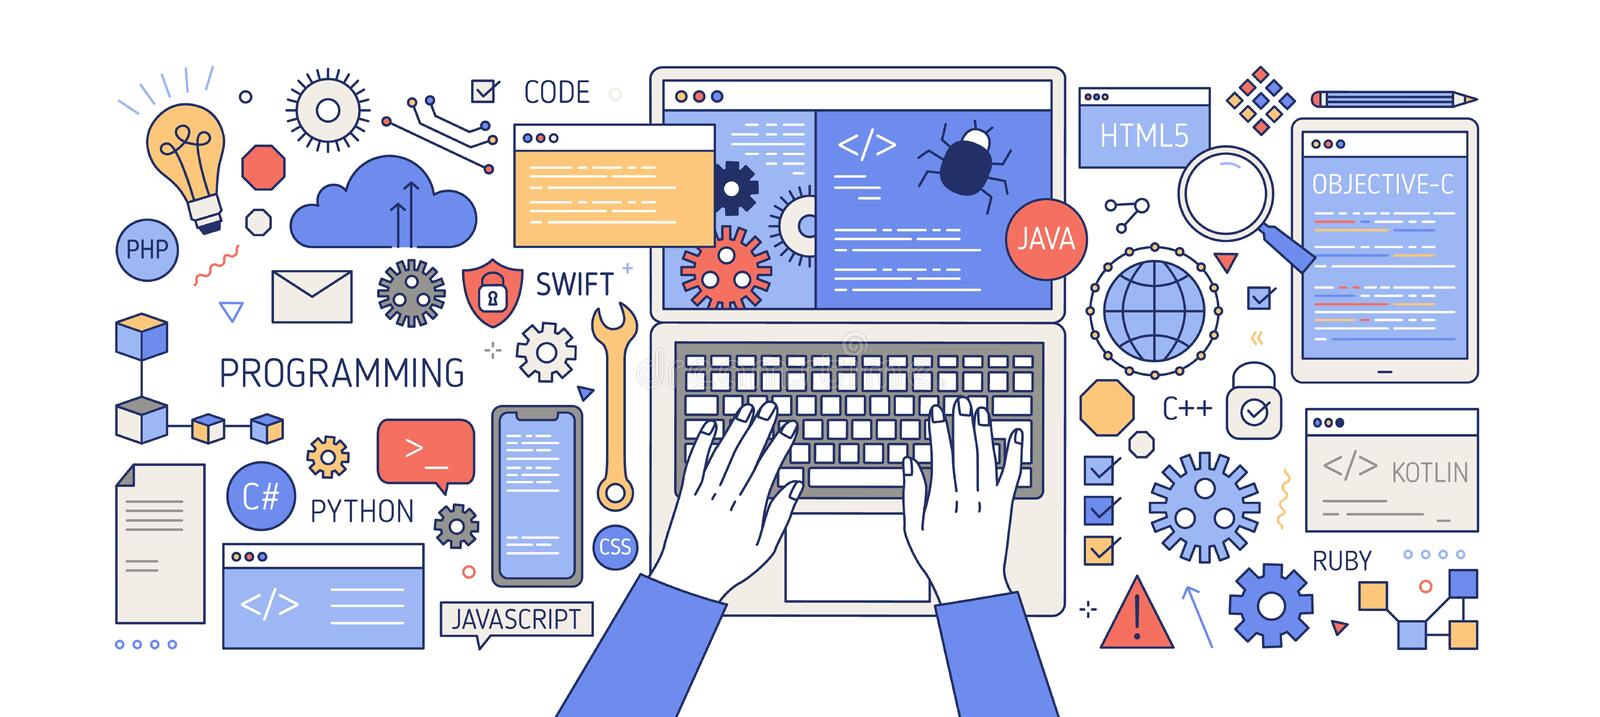 Colorful banner with hands working on computer, different electronic gadgets, devices and symbols. Programming, software. Development, program coding. Creative stock illustration